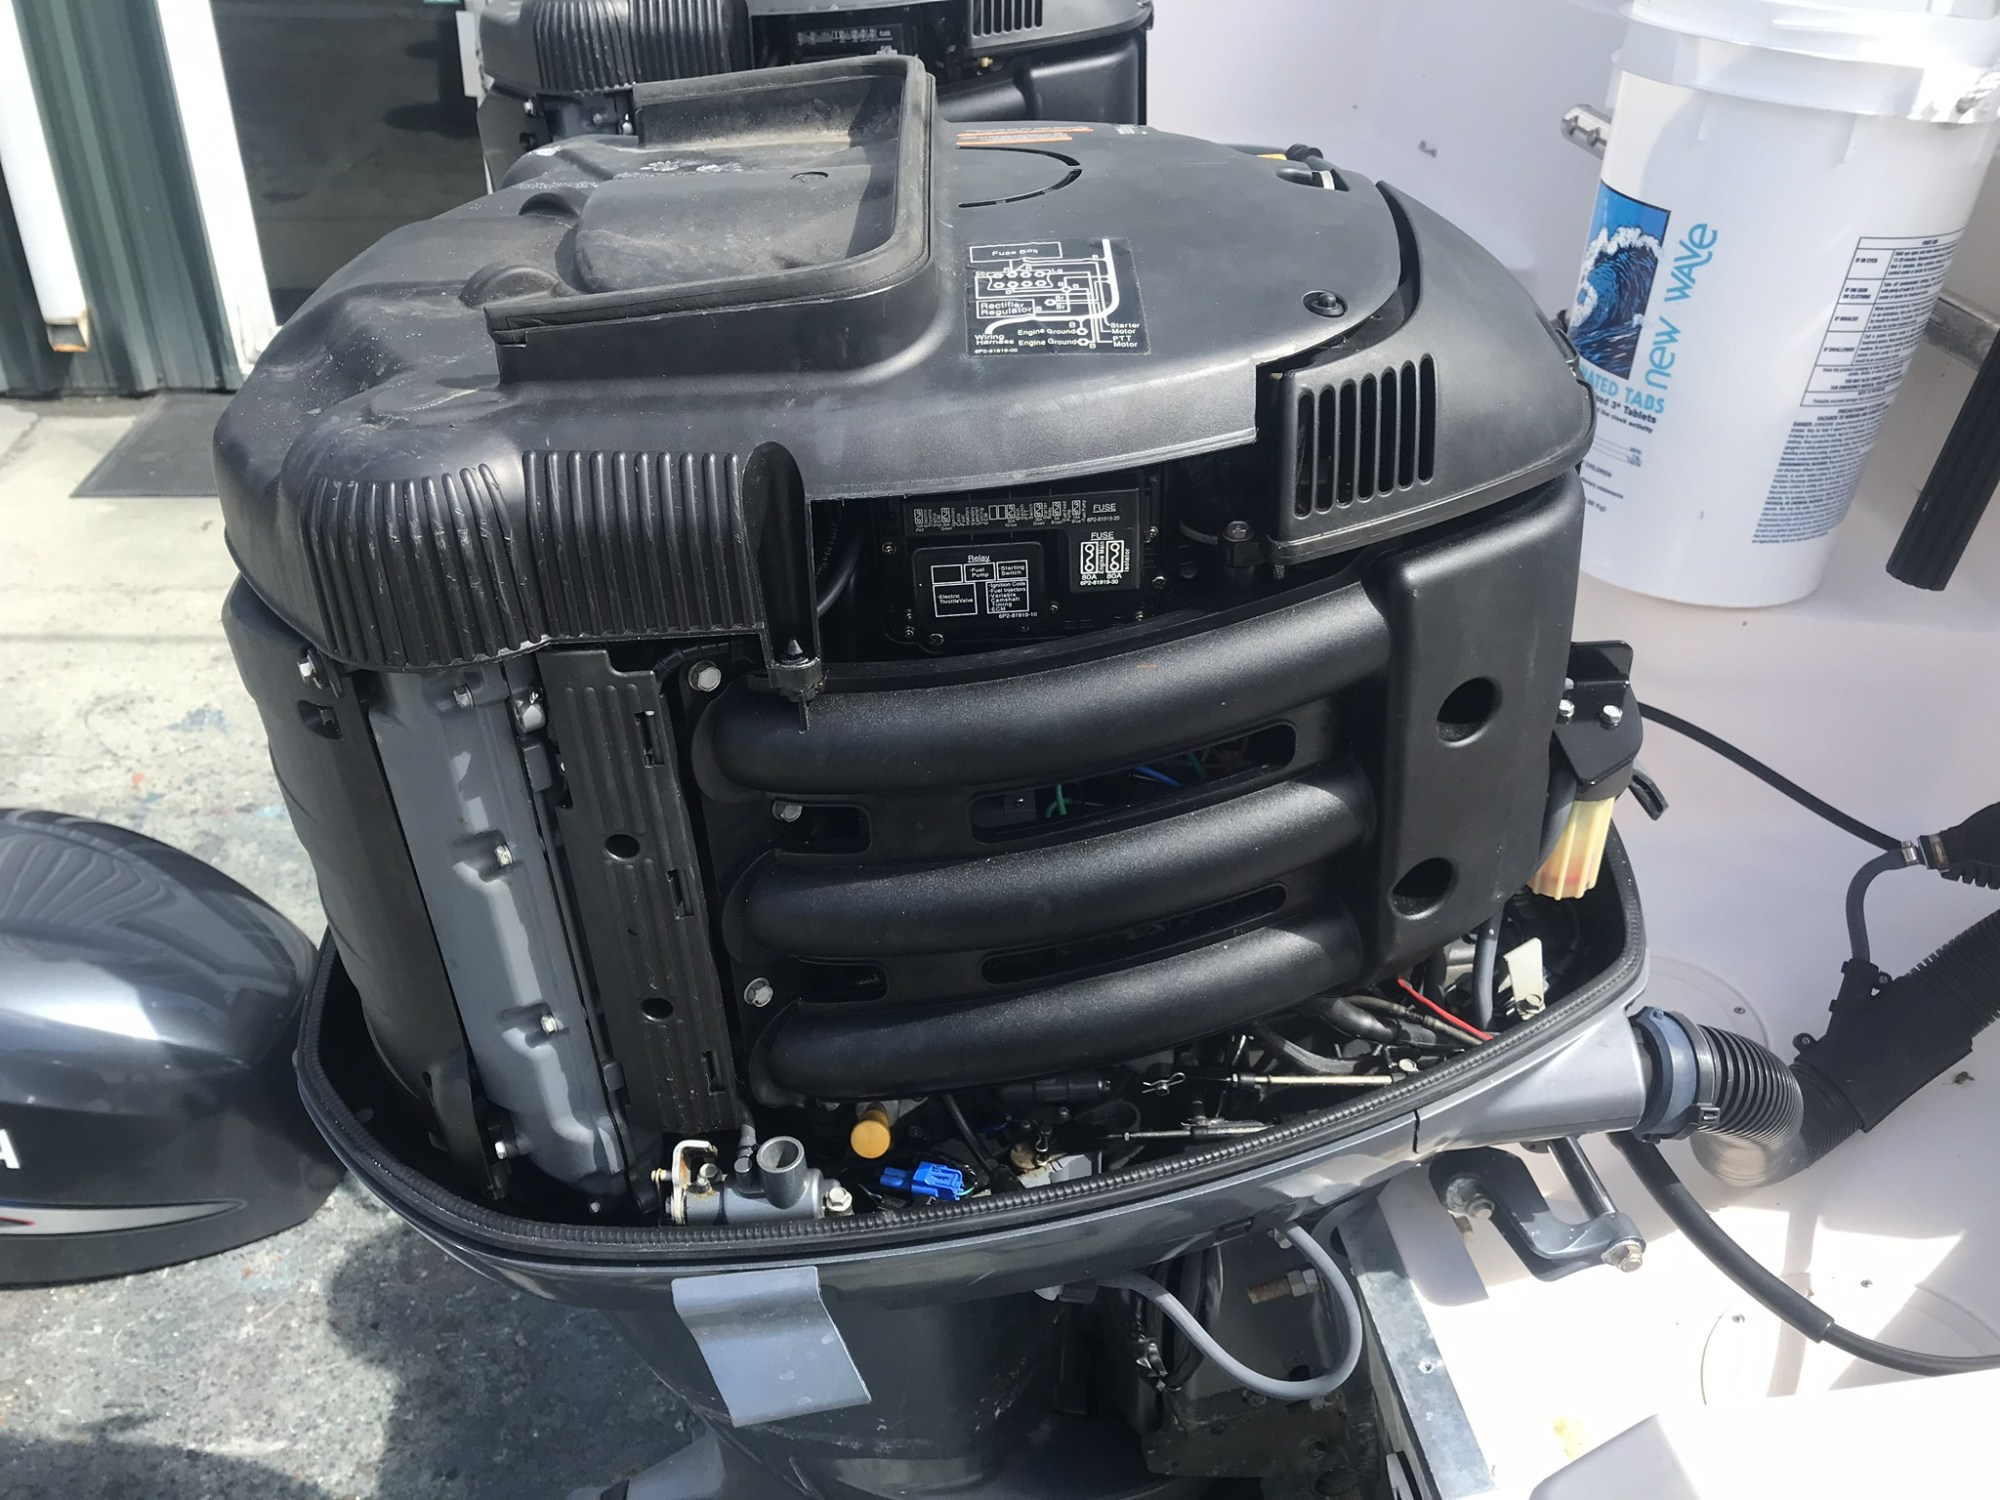 hight resolution of 2006 yamaha f250 outboard 25 1450 hours good condition 2 sets of controls harness gauges prop etc 8000 00 obo call or text 941 650 0677